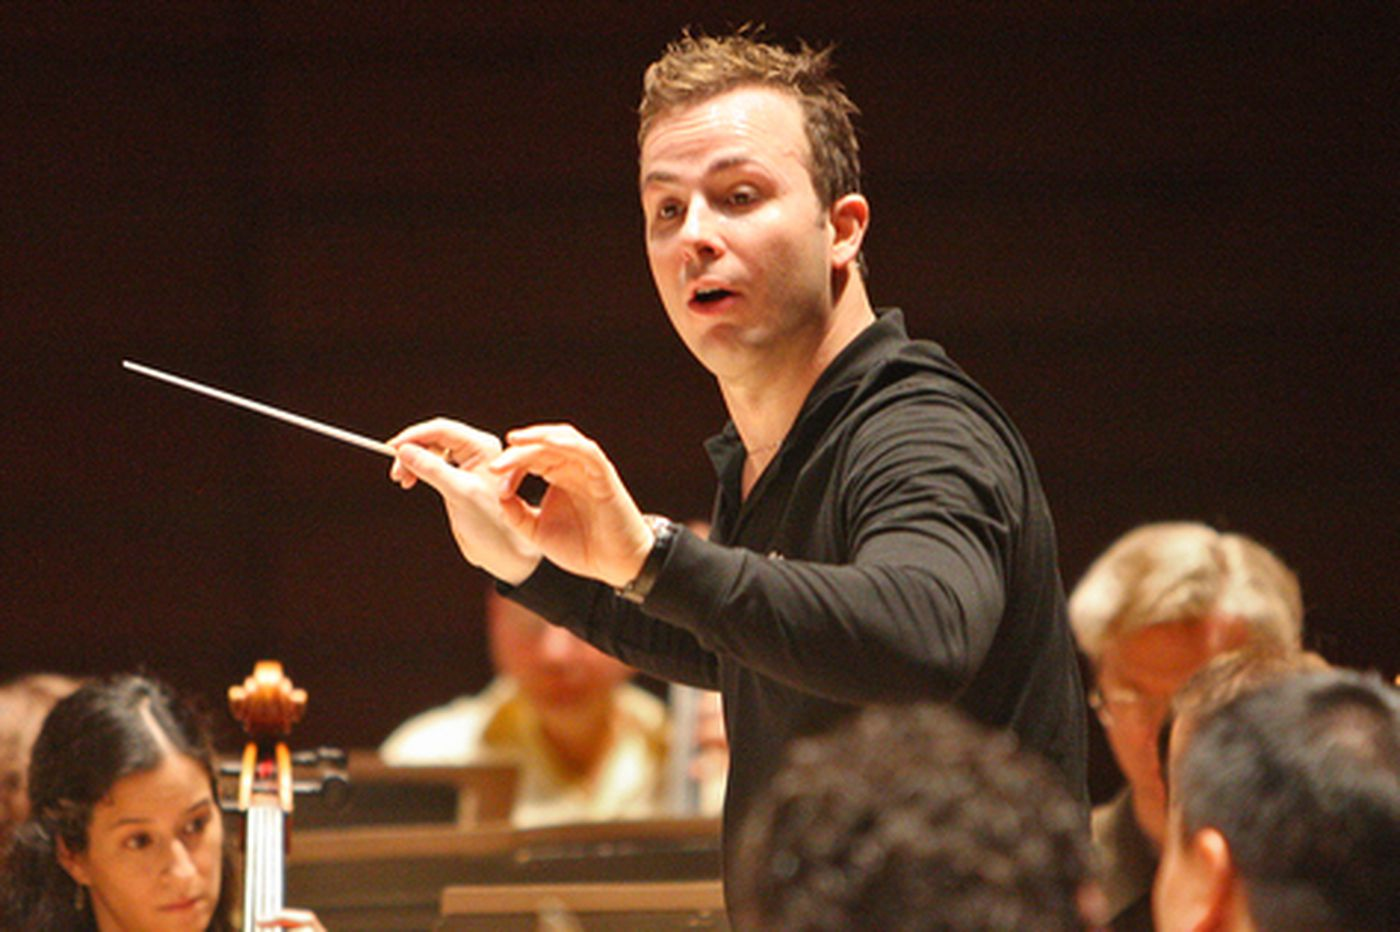 Young conductor shows he has seasoned skills